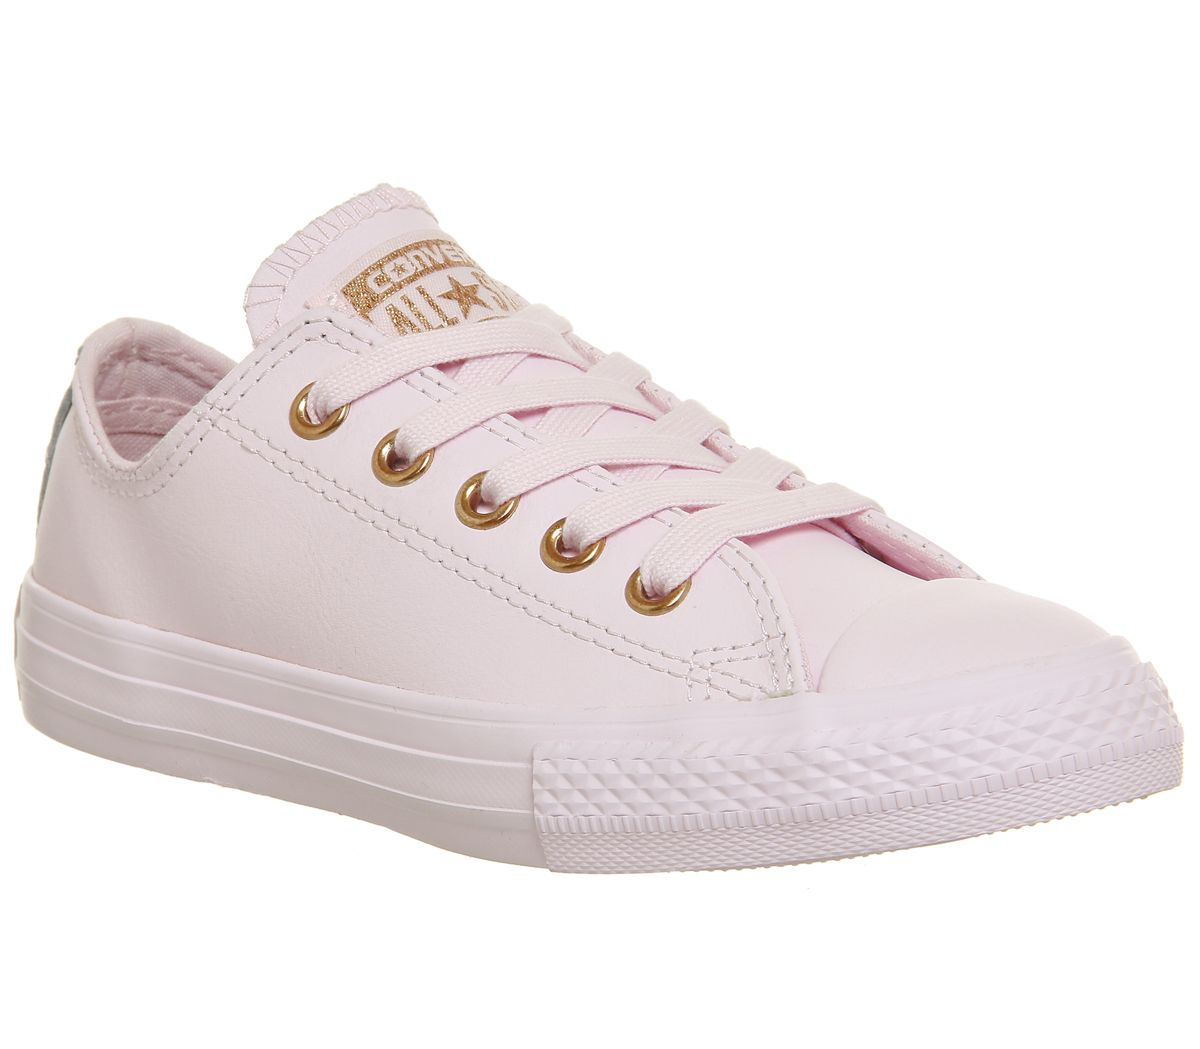 85dcf1810725 Converse All Star Ox Leather Kids Artic Pink Rose Gold - Unisex